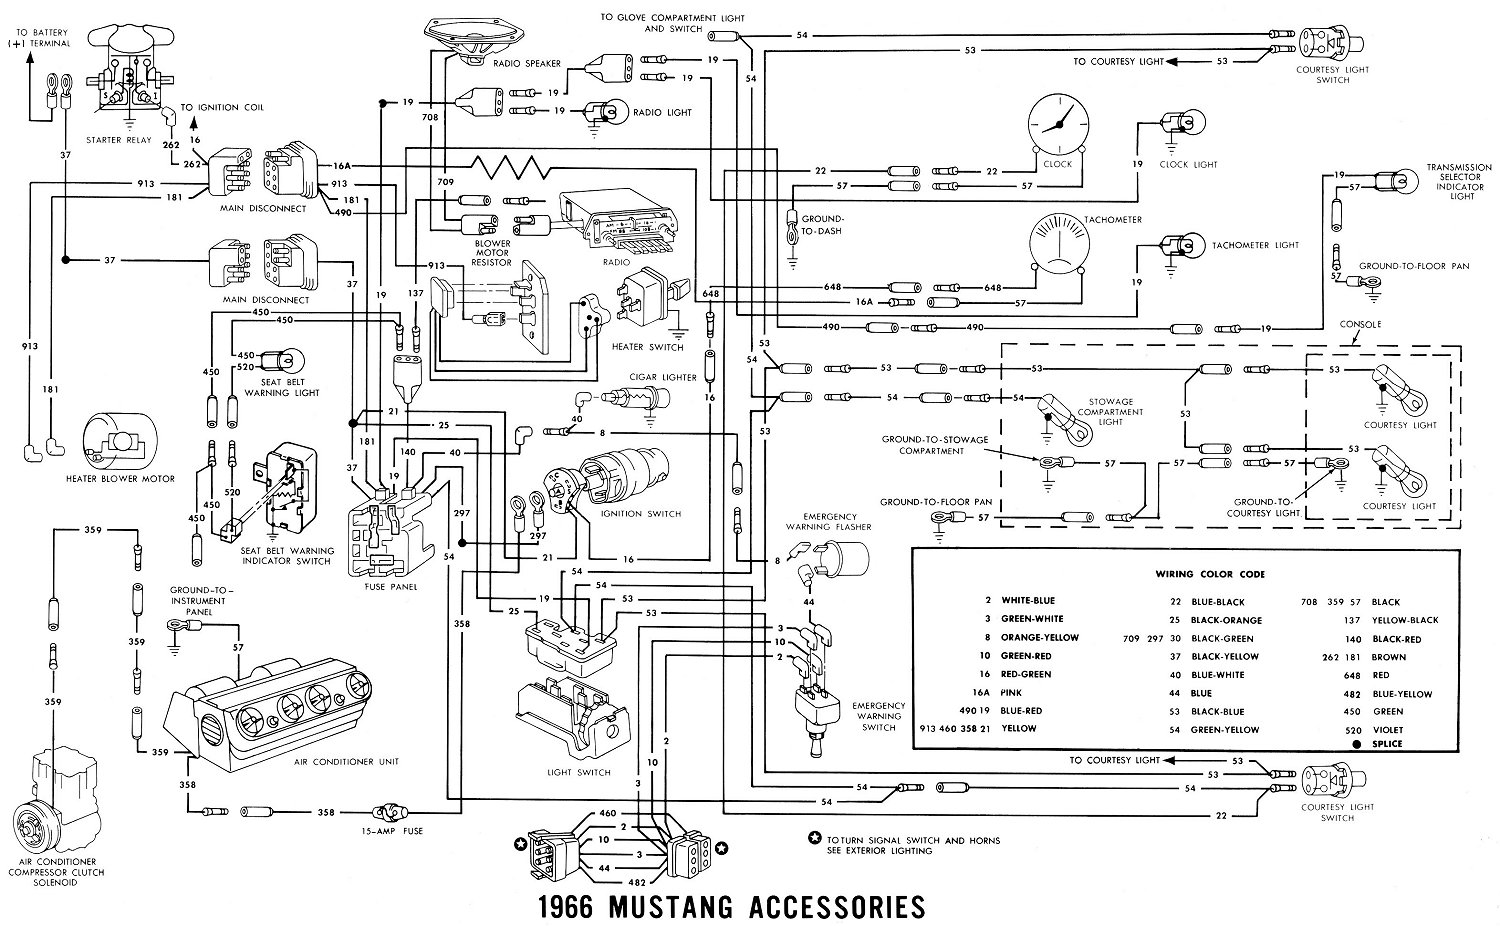 1965 Ford Mustang Fuse Box Diagram Wiring Library 68 F100 66 Radio Data Schema 1970 65